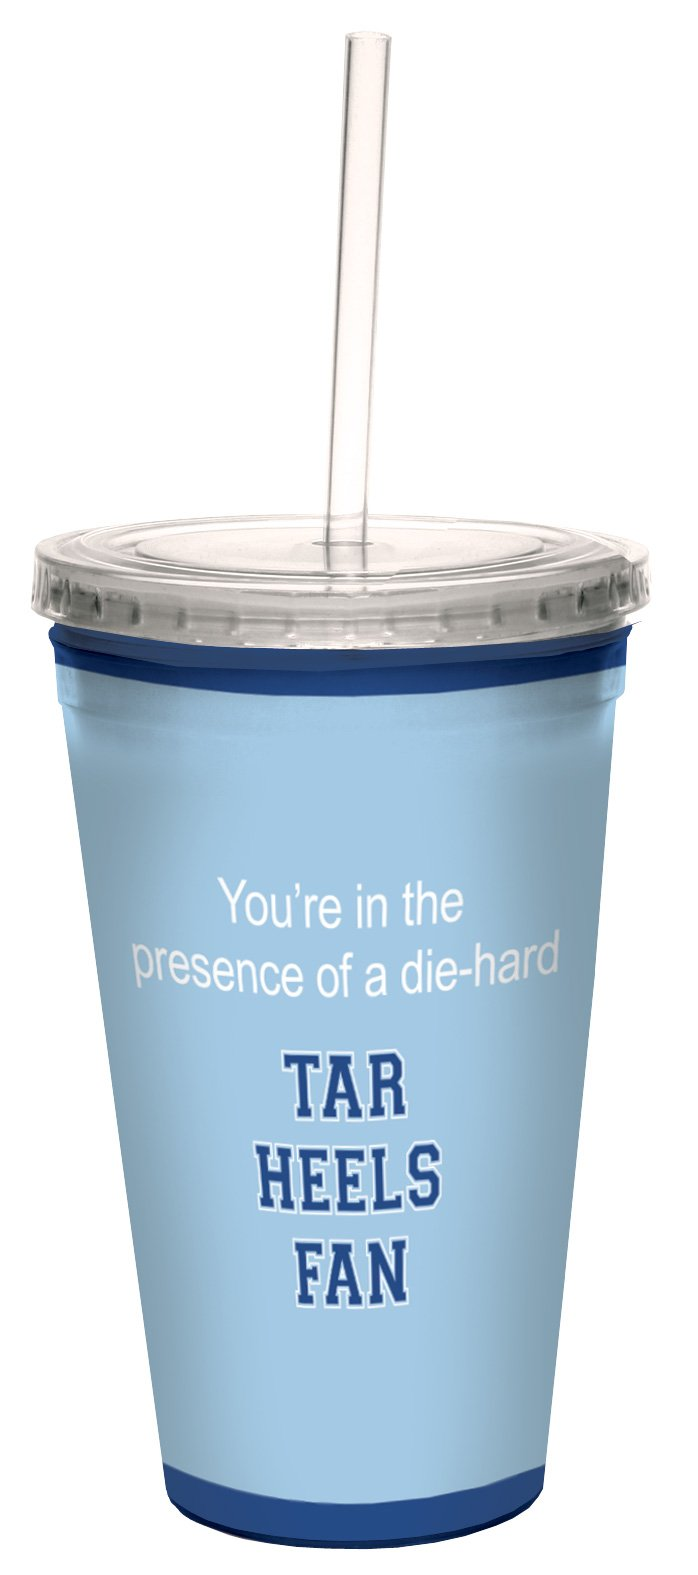 Tree-Free Greetings cc34818 Tar Heels College Basketball Artful Traveler Double-Walled Cool Cup with Reusable Straw, 16-Ounce